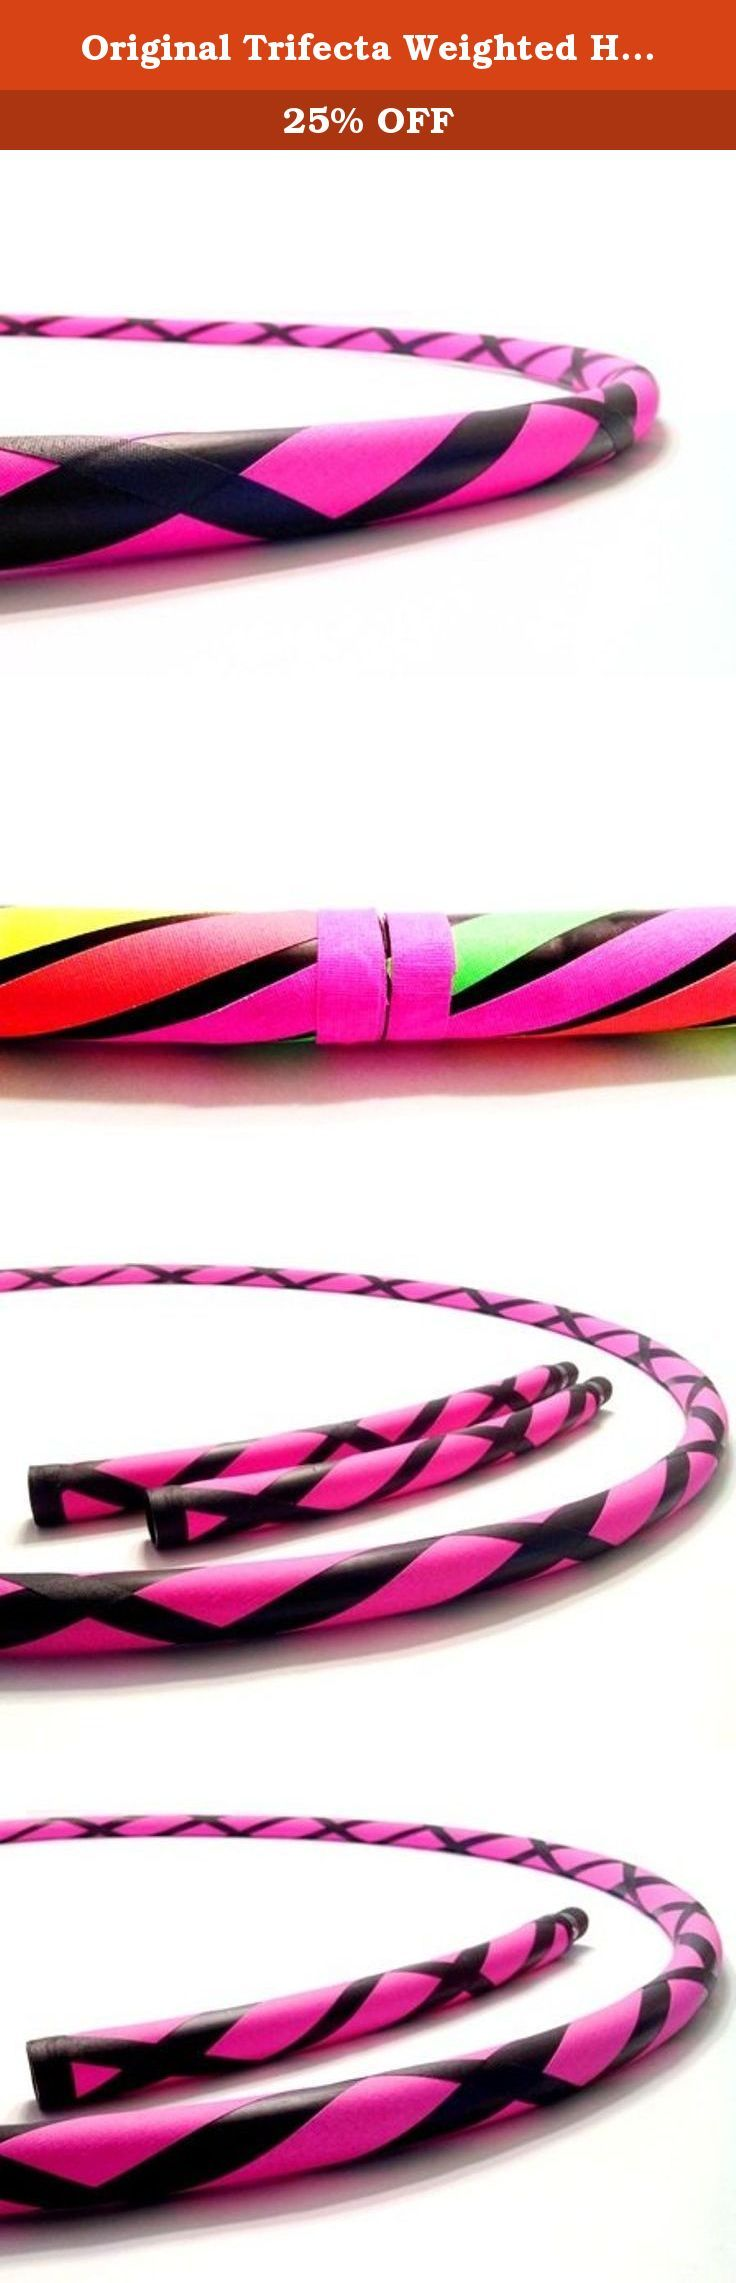 "Original Trifecta Weighted Hula Hoop (Lightning Sky)3 Hoops in 1 (40"" 1 Hula Hoop). DIRECT FROM THE MANUFACTURER. Featuring the original manufacturer of the ""TRIFECTA"" the newest innovation in hula hooping. Paradise Hoops is formally the manufacturer for about 90% of Hoopnotica's handmade hula hoops. We have the BEST QUALITY BEST PRICE. This ""TRIFECTA"" hula hoop was created by Janou Lightning former team leader of Hoopnotica. She took her expertise in the hooping industry and made a hoop..."